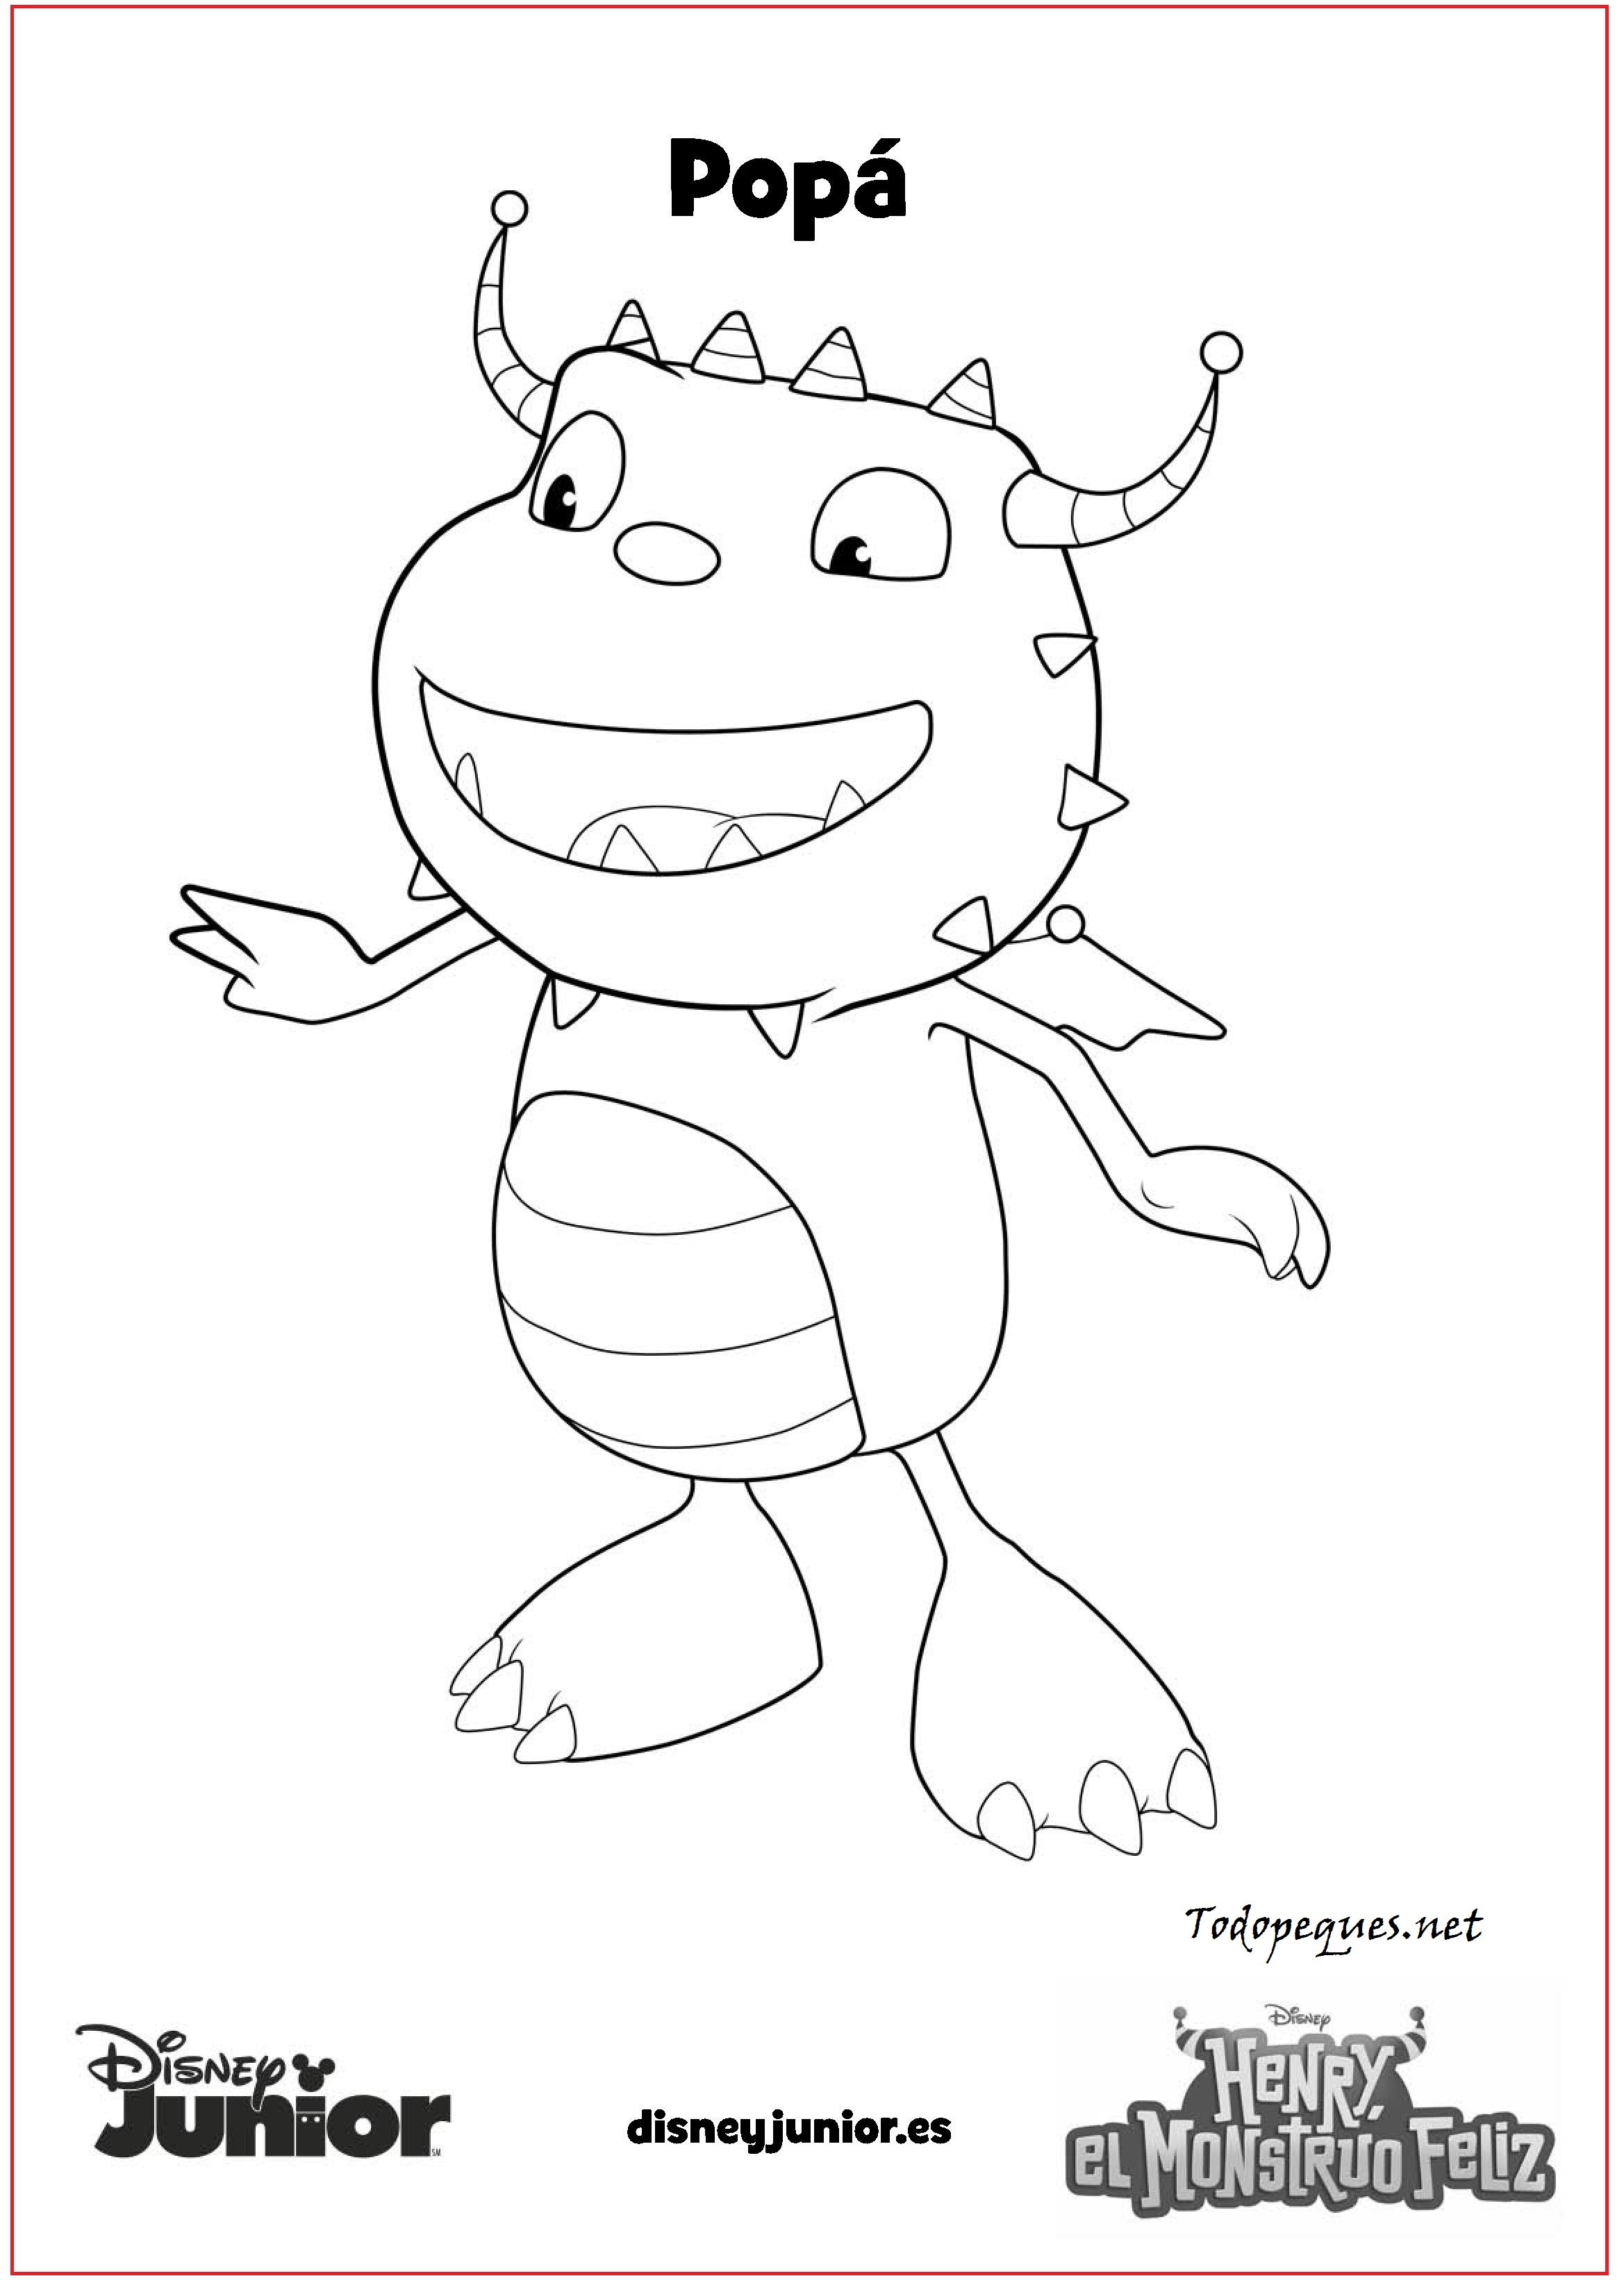 henry danger coloring pages - r=henry danger